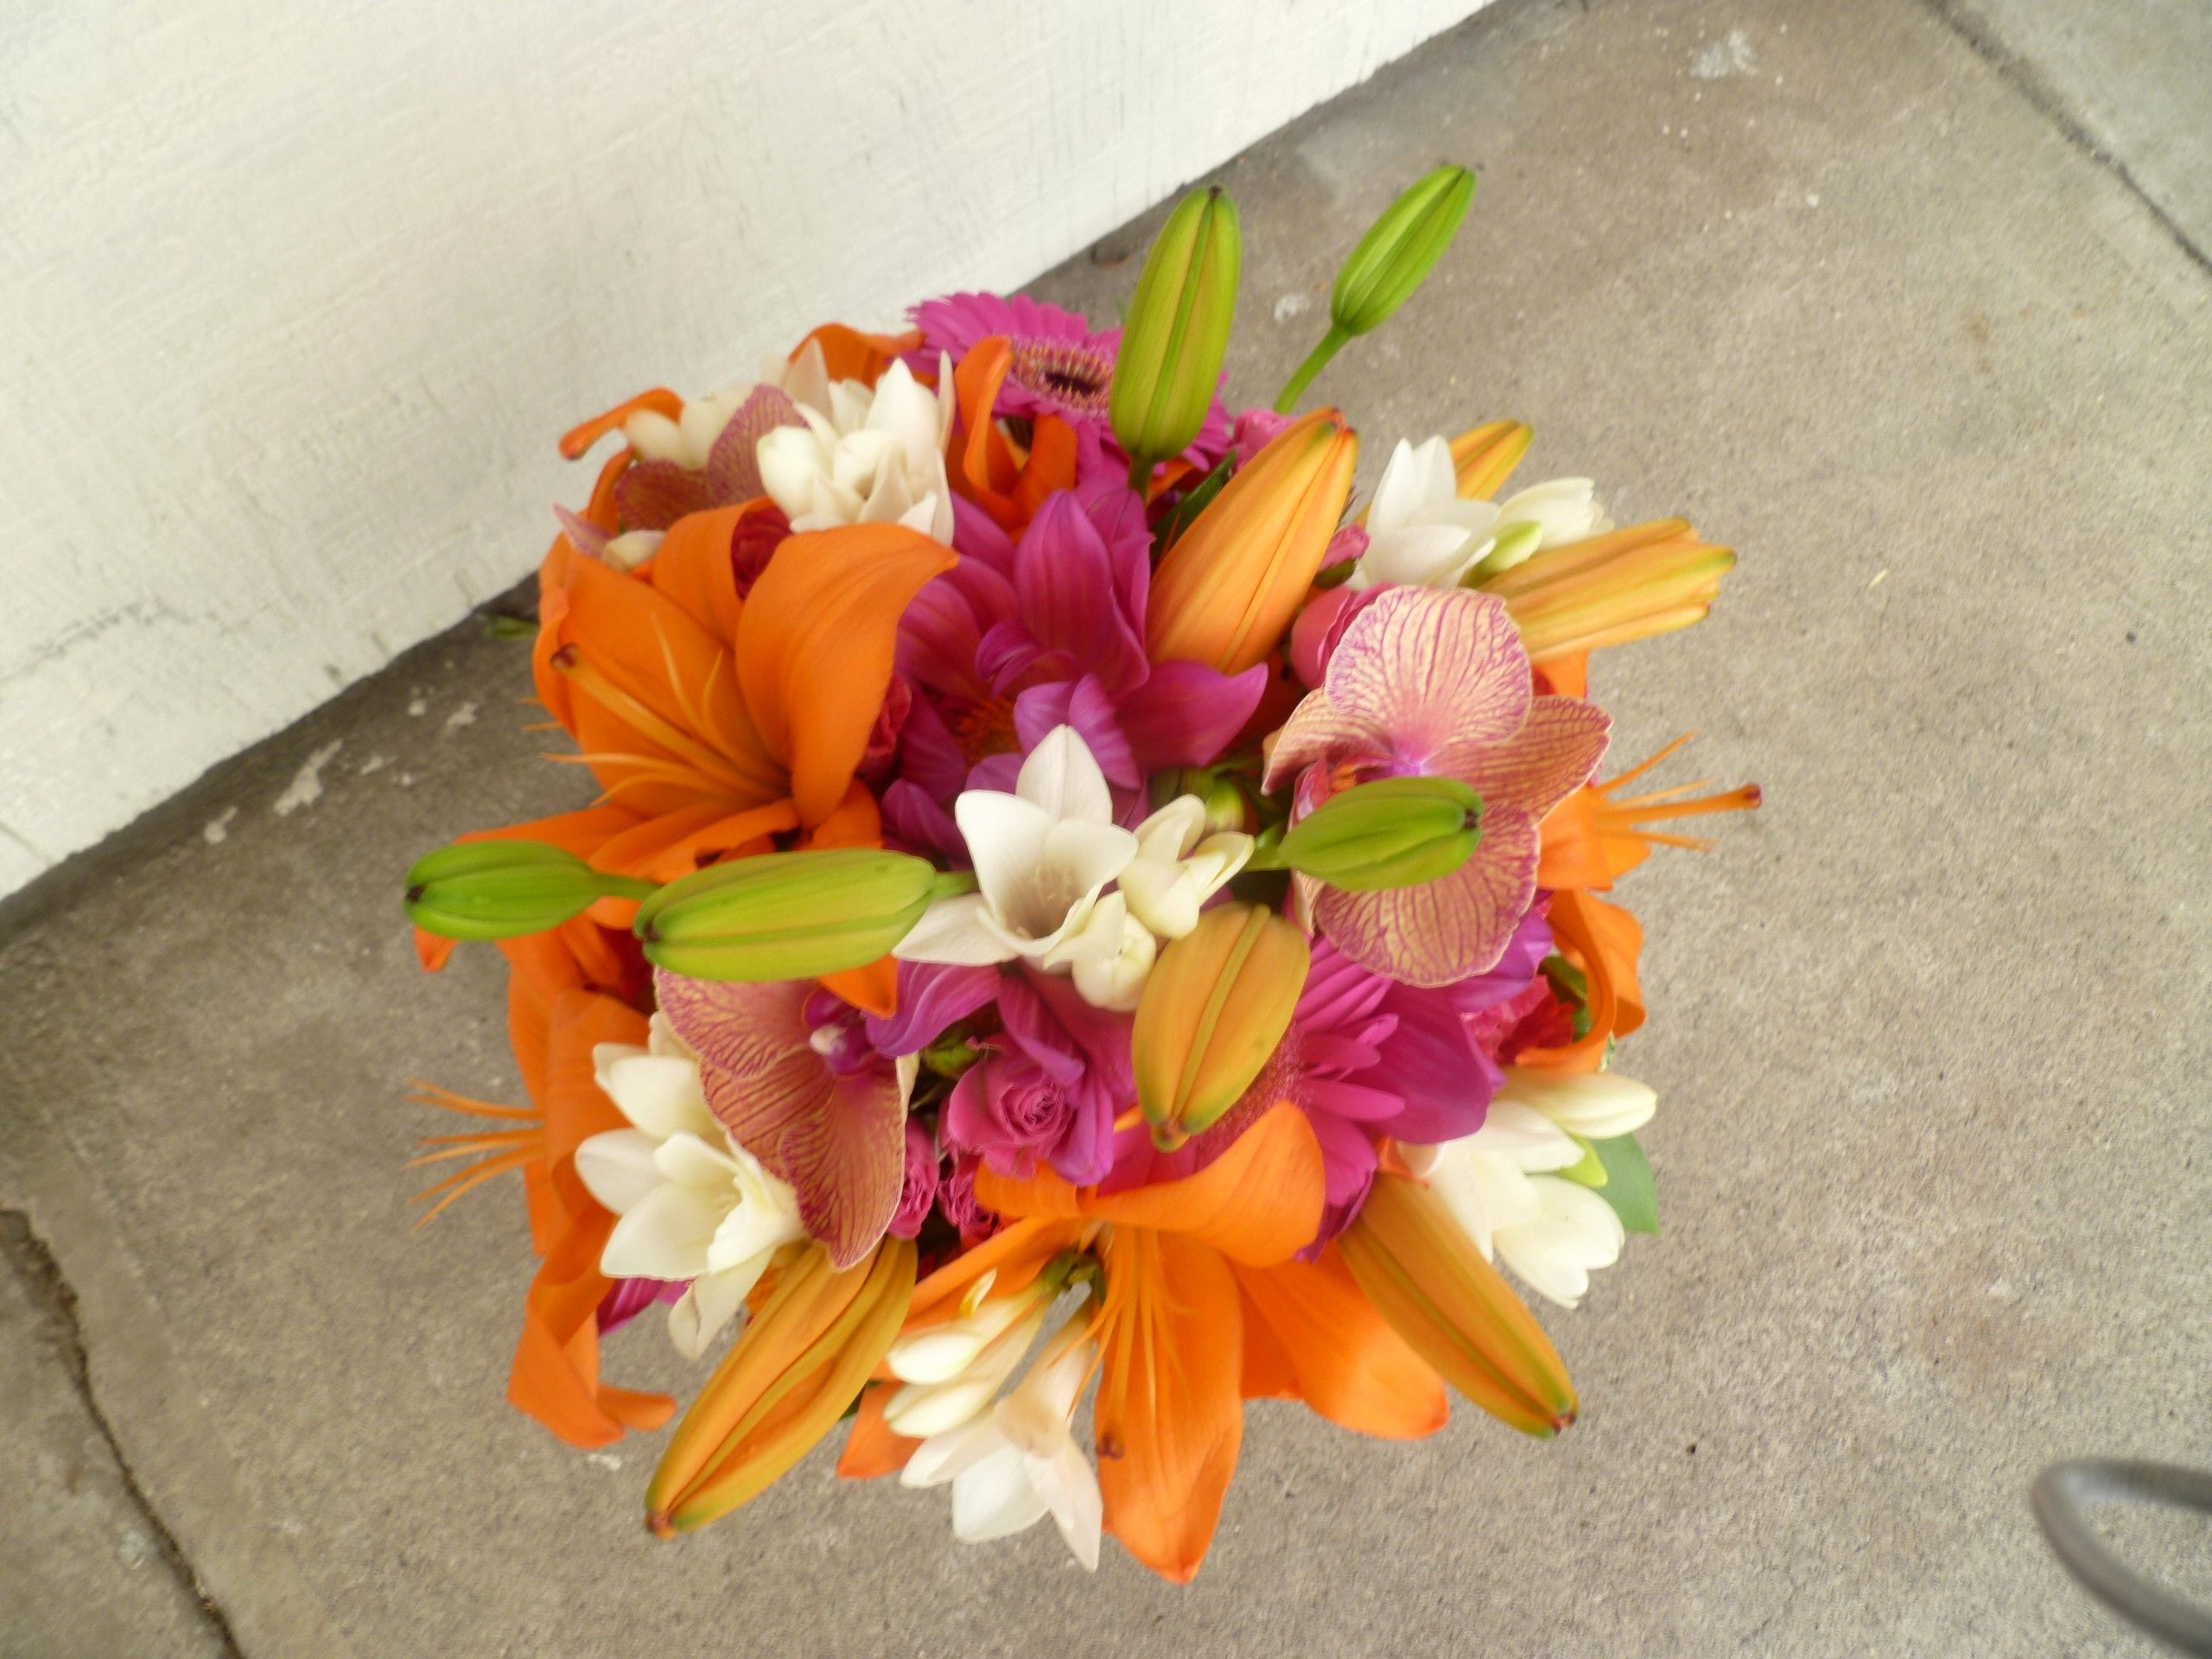 Orange asiatic lilies and orange roses are accented with pink and white